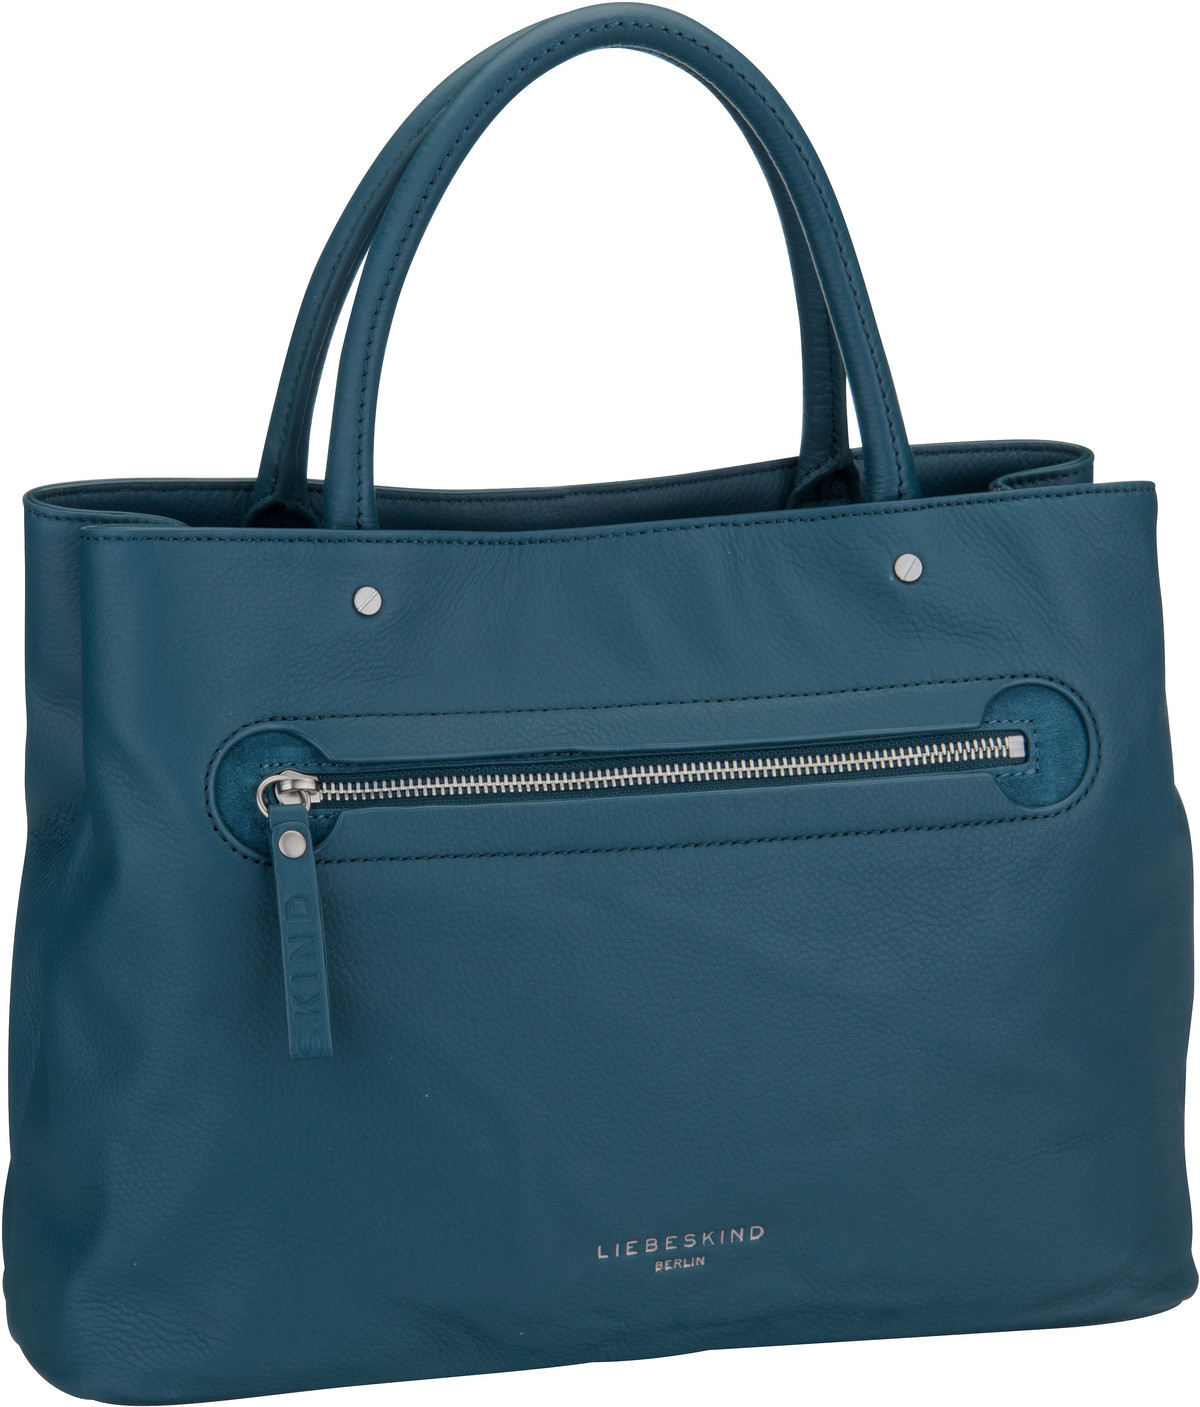 Berlin Shopper Mini Daily 2 Satchel M China Blue